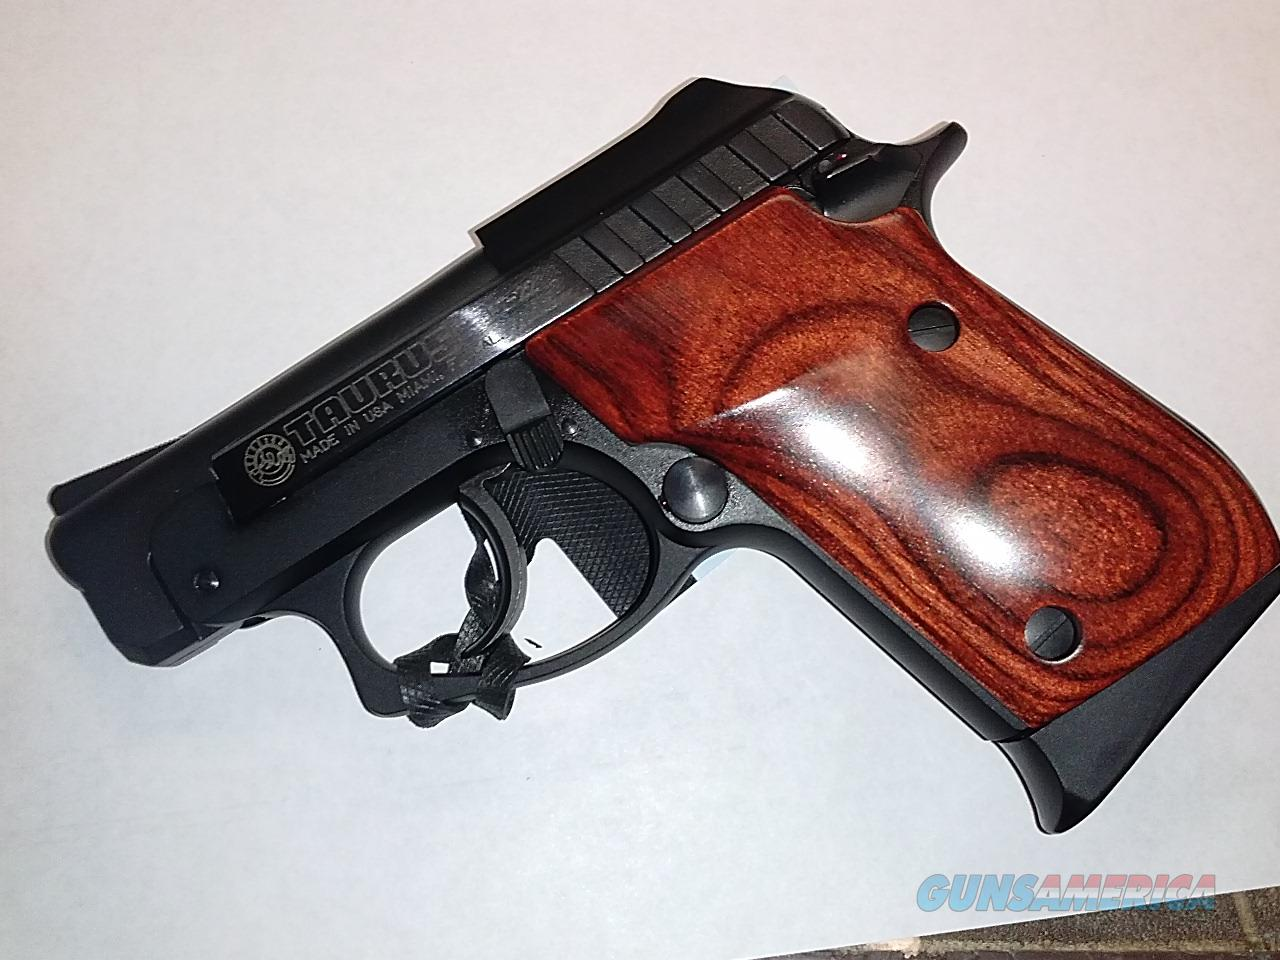 Taurus PT-22 - Used but Really New  Guns > Pistols > Taurus Pistols/Revolvers > Pistols > Steel Frame